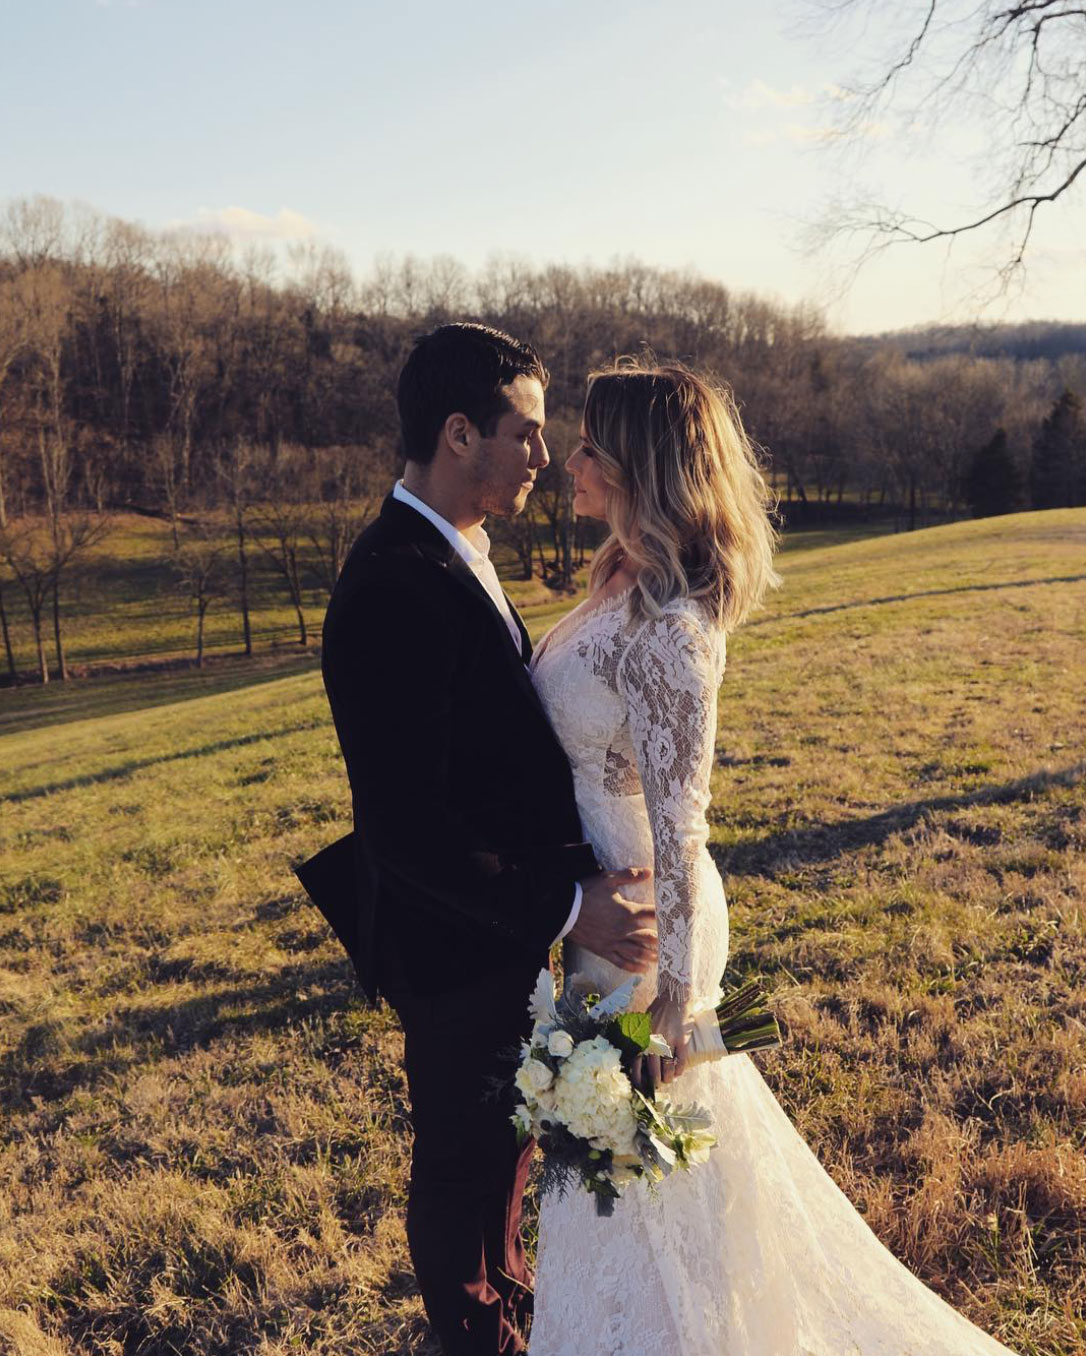 Miranda Lambert Wears Elegant Long-Sleeve Lace Dress to Marry Brendan McLoughlin